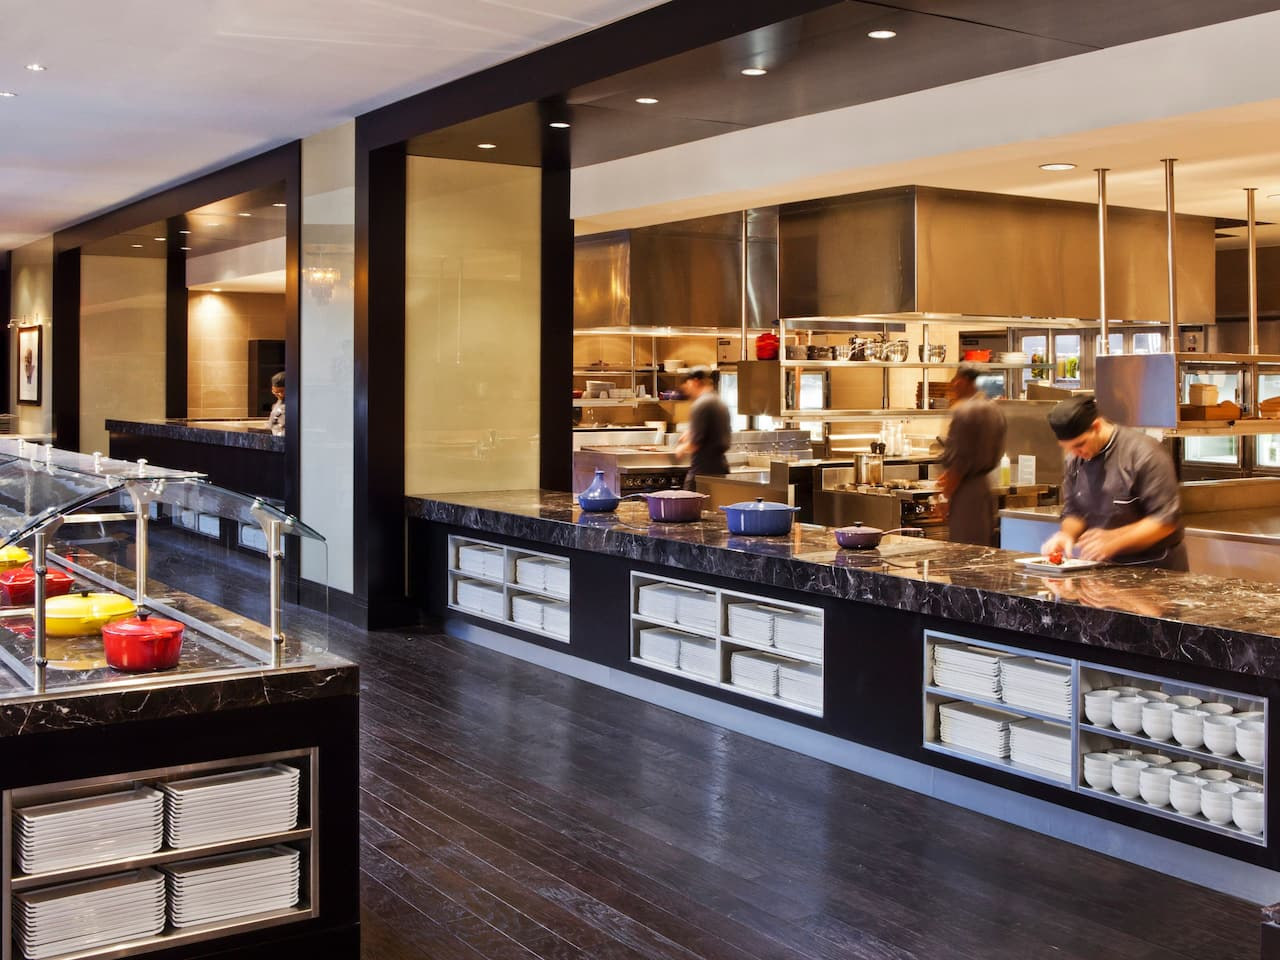 8 Block Open Kitchen at Hyatt Regency New Orleans